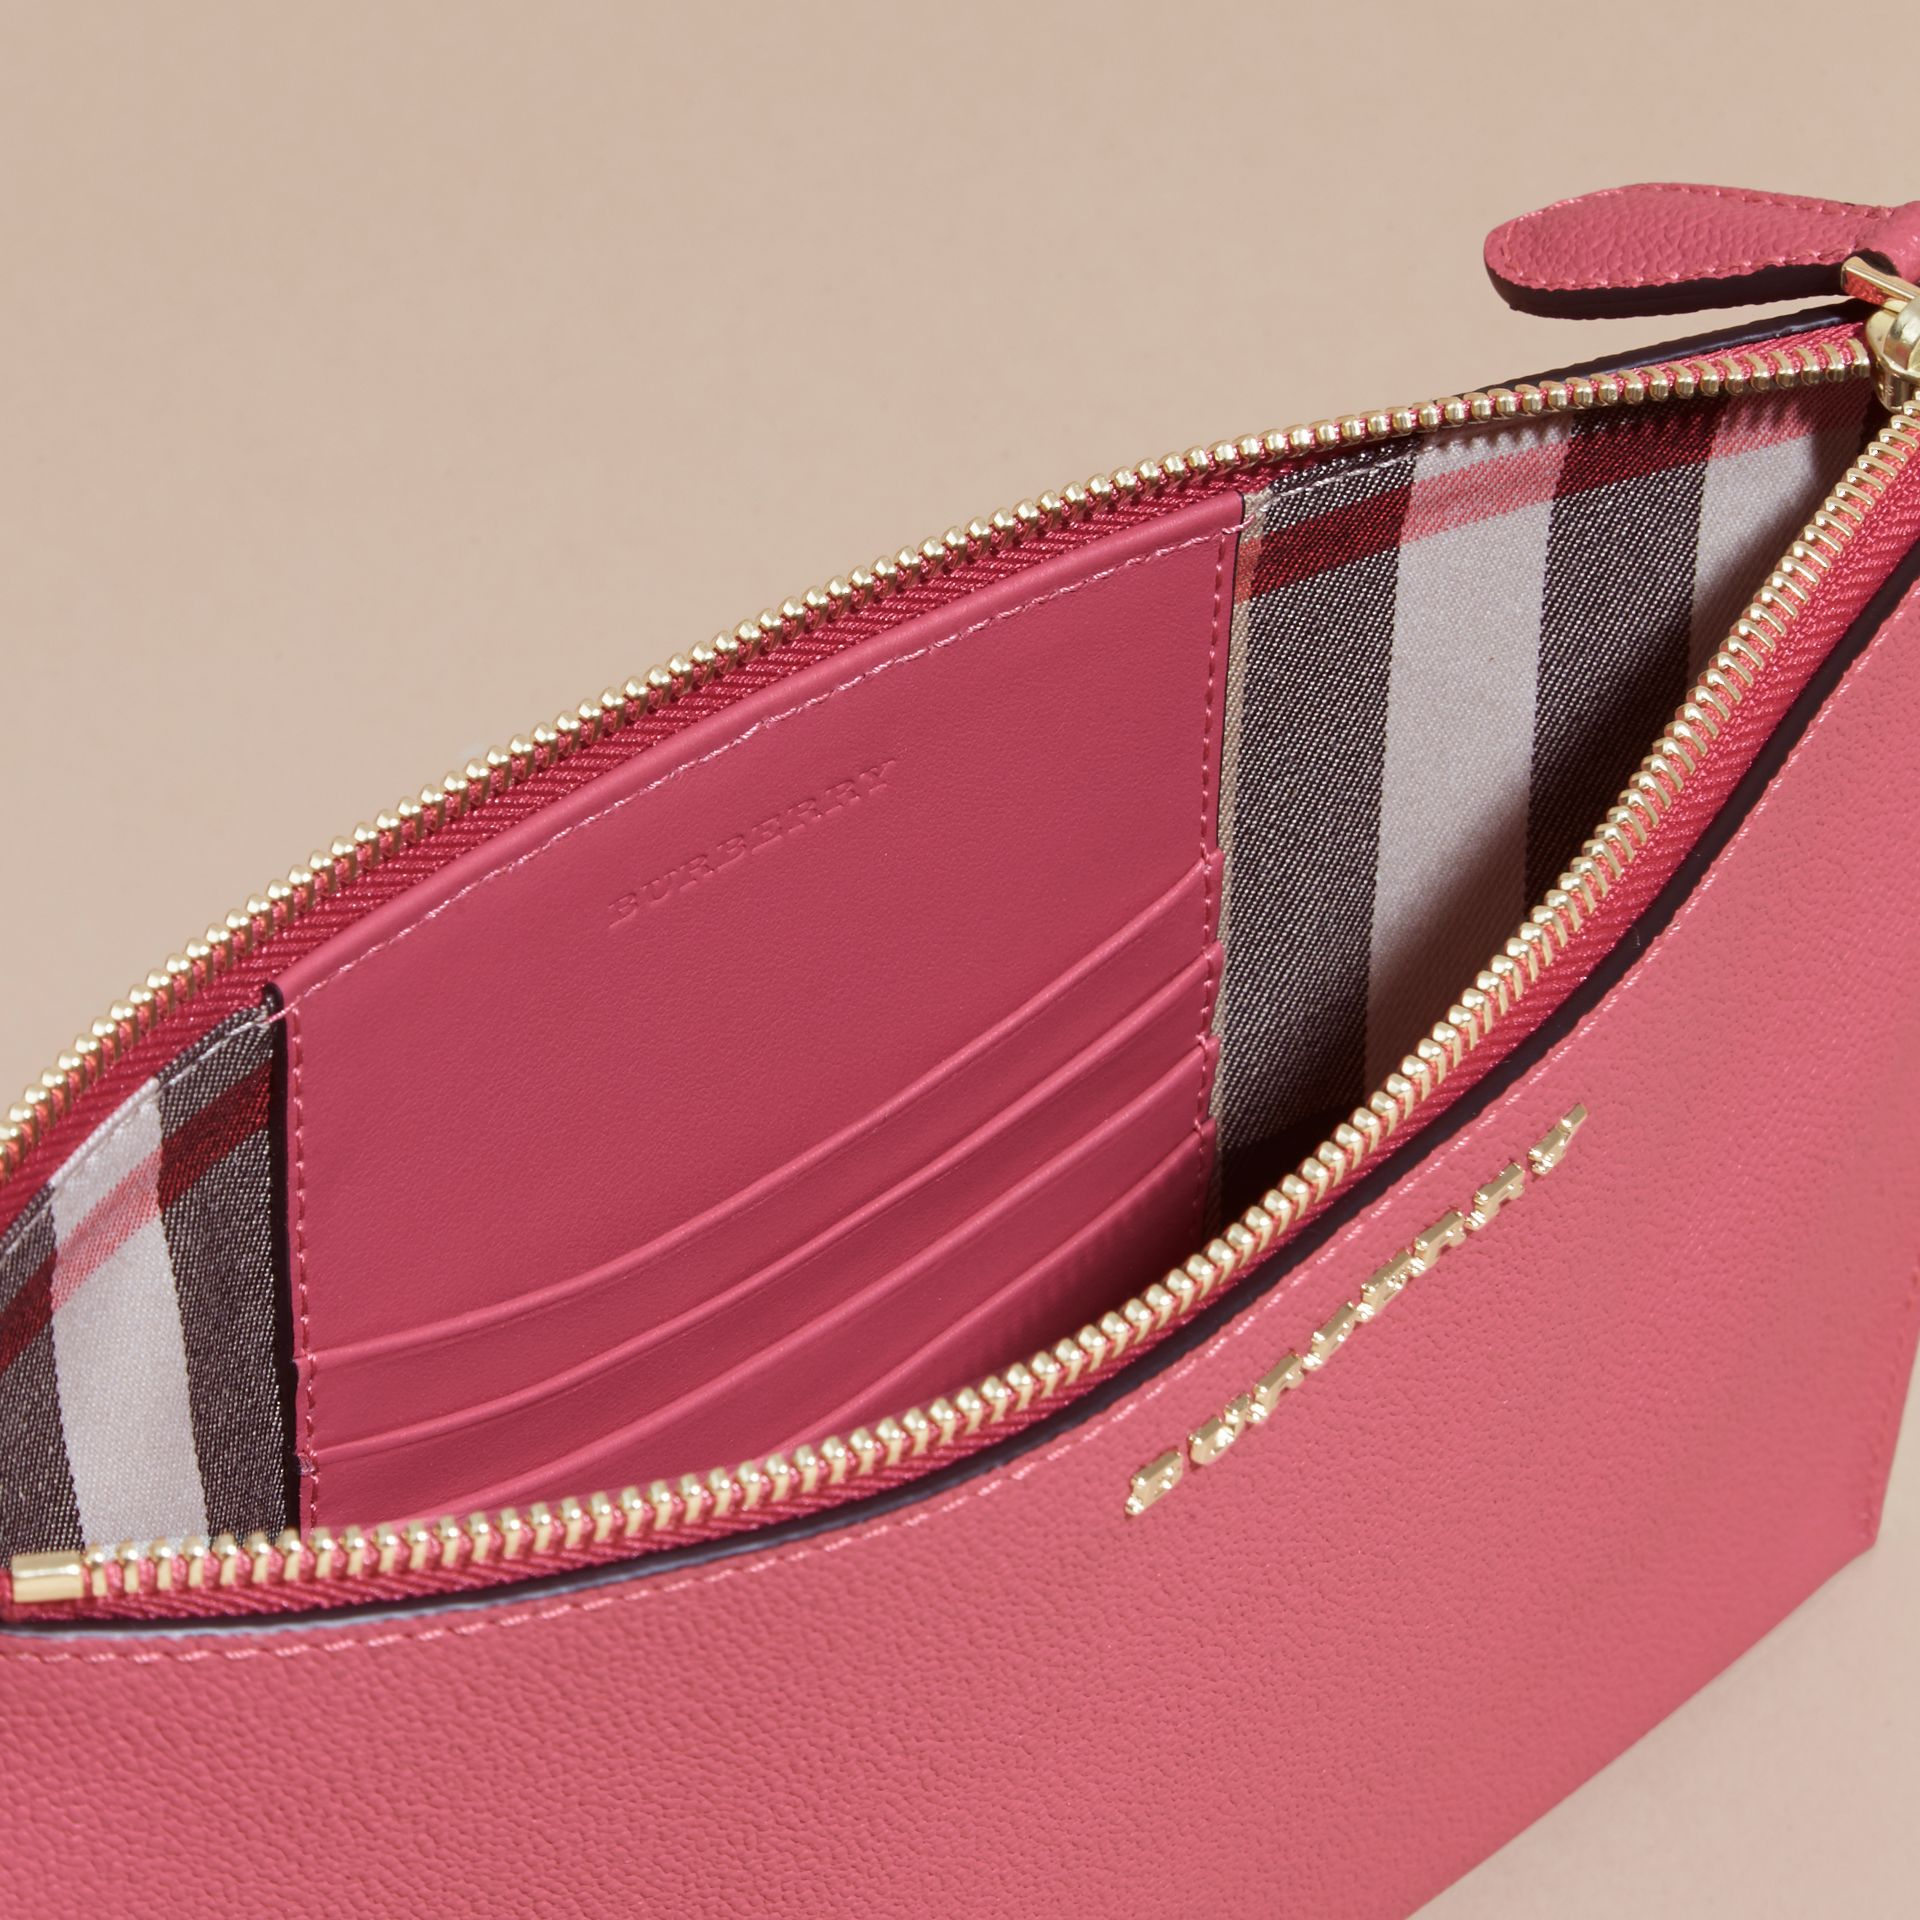 Pink azalea Leather Clutch Bag with Check Lining Pink Azalea - gallery image 6